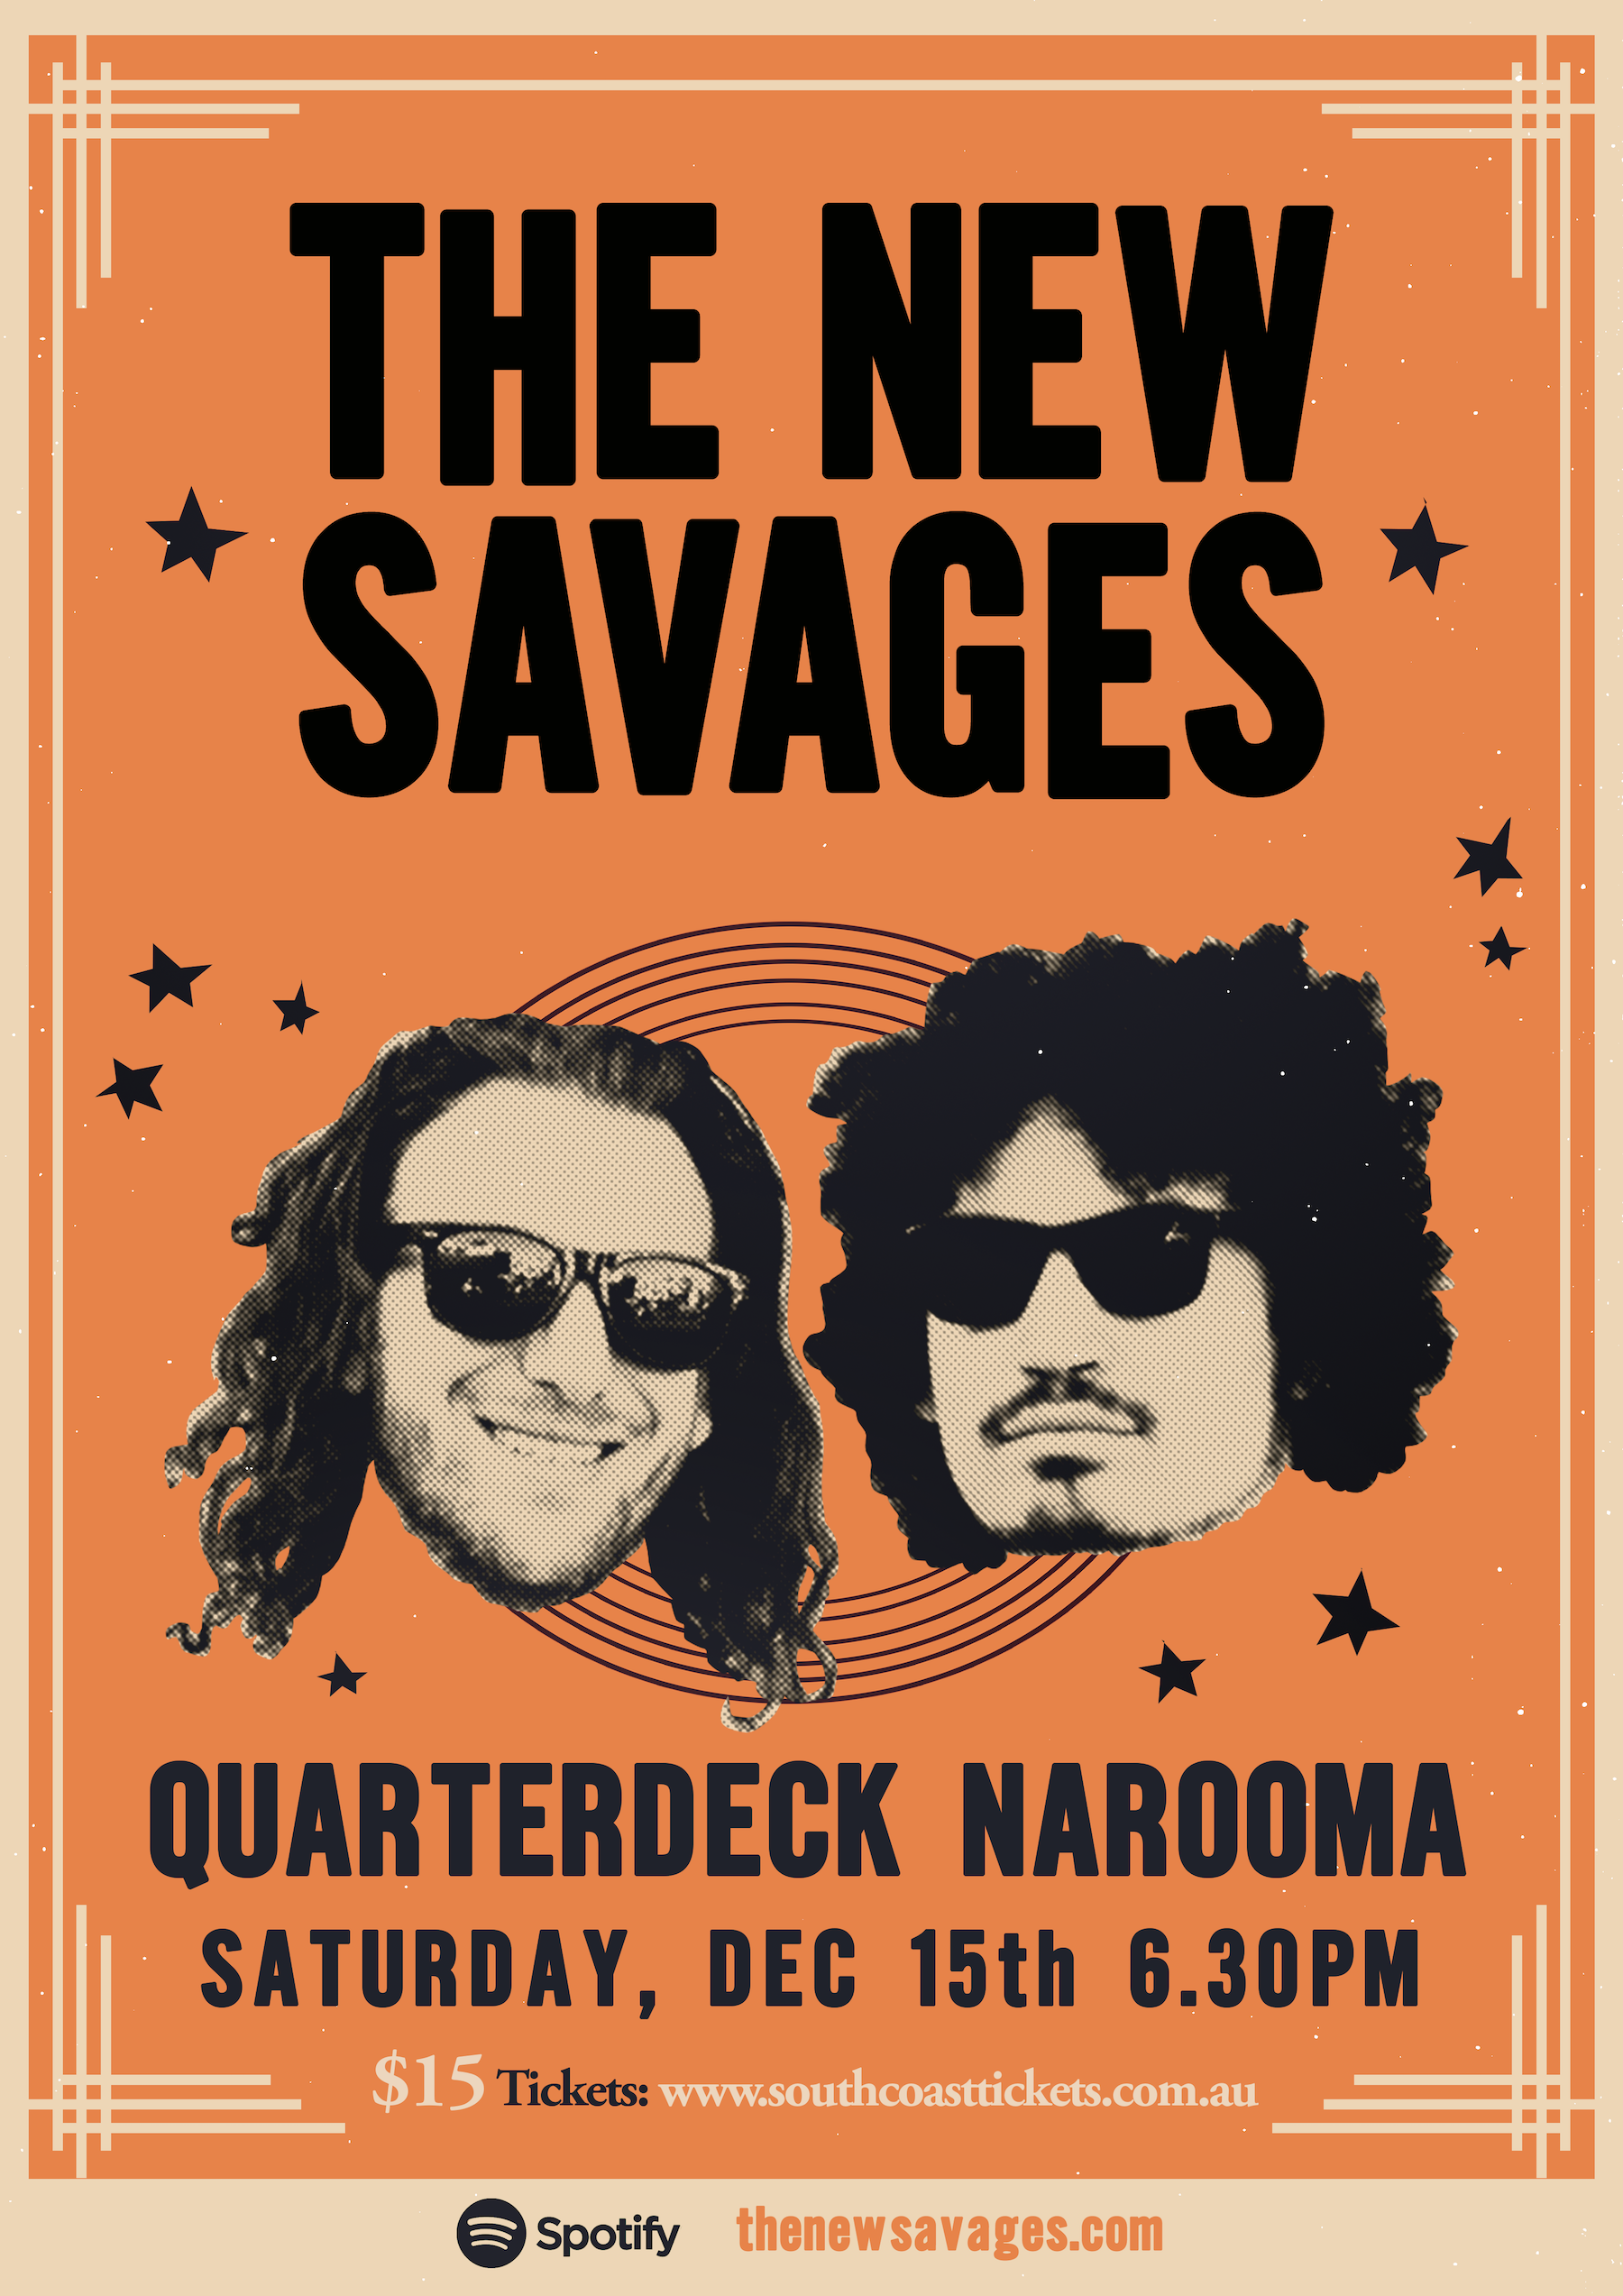 The New Savages @ Quarterdeck, Narooma